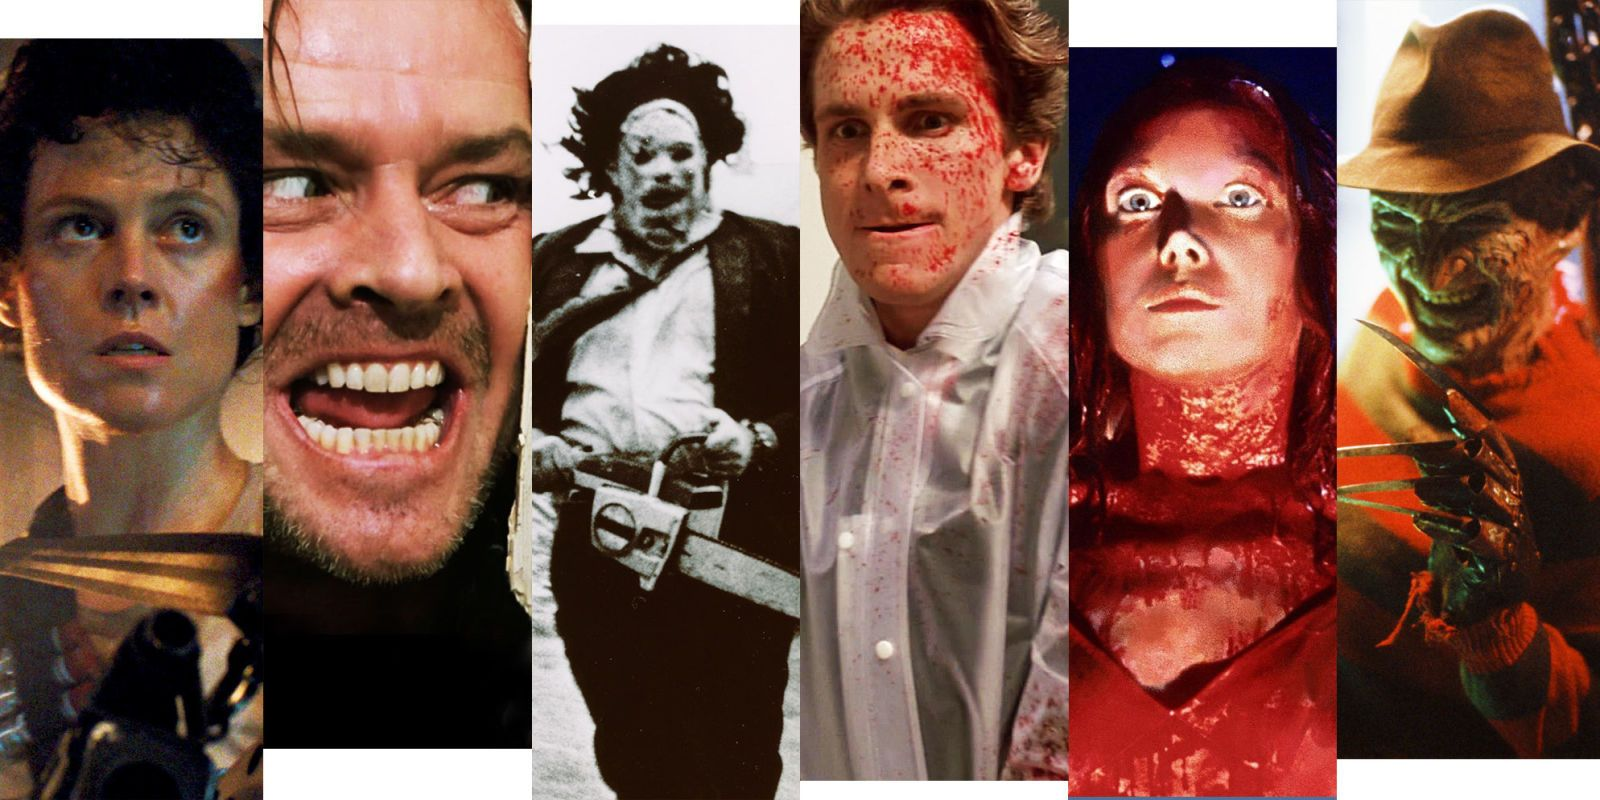 image  sc 1 st  Esquire & 40 Scariest Halloween Movies of All Time - Best Classic Horror Movies